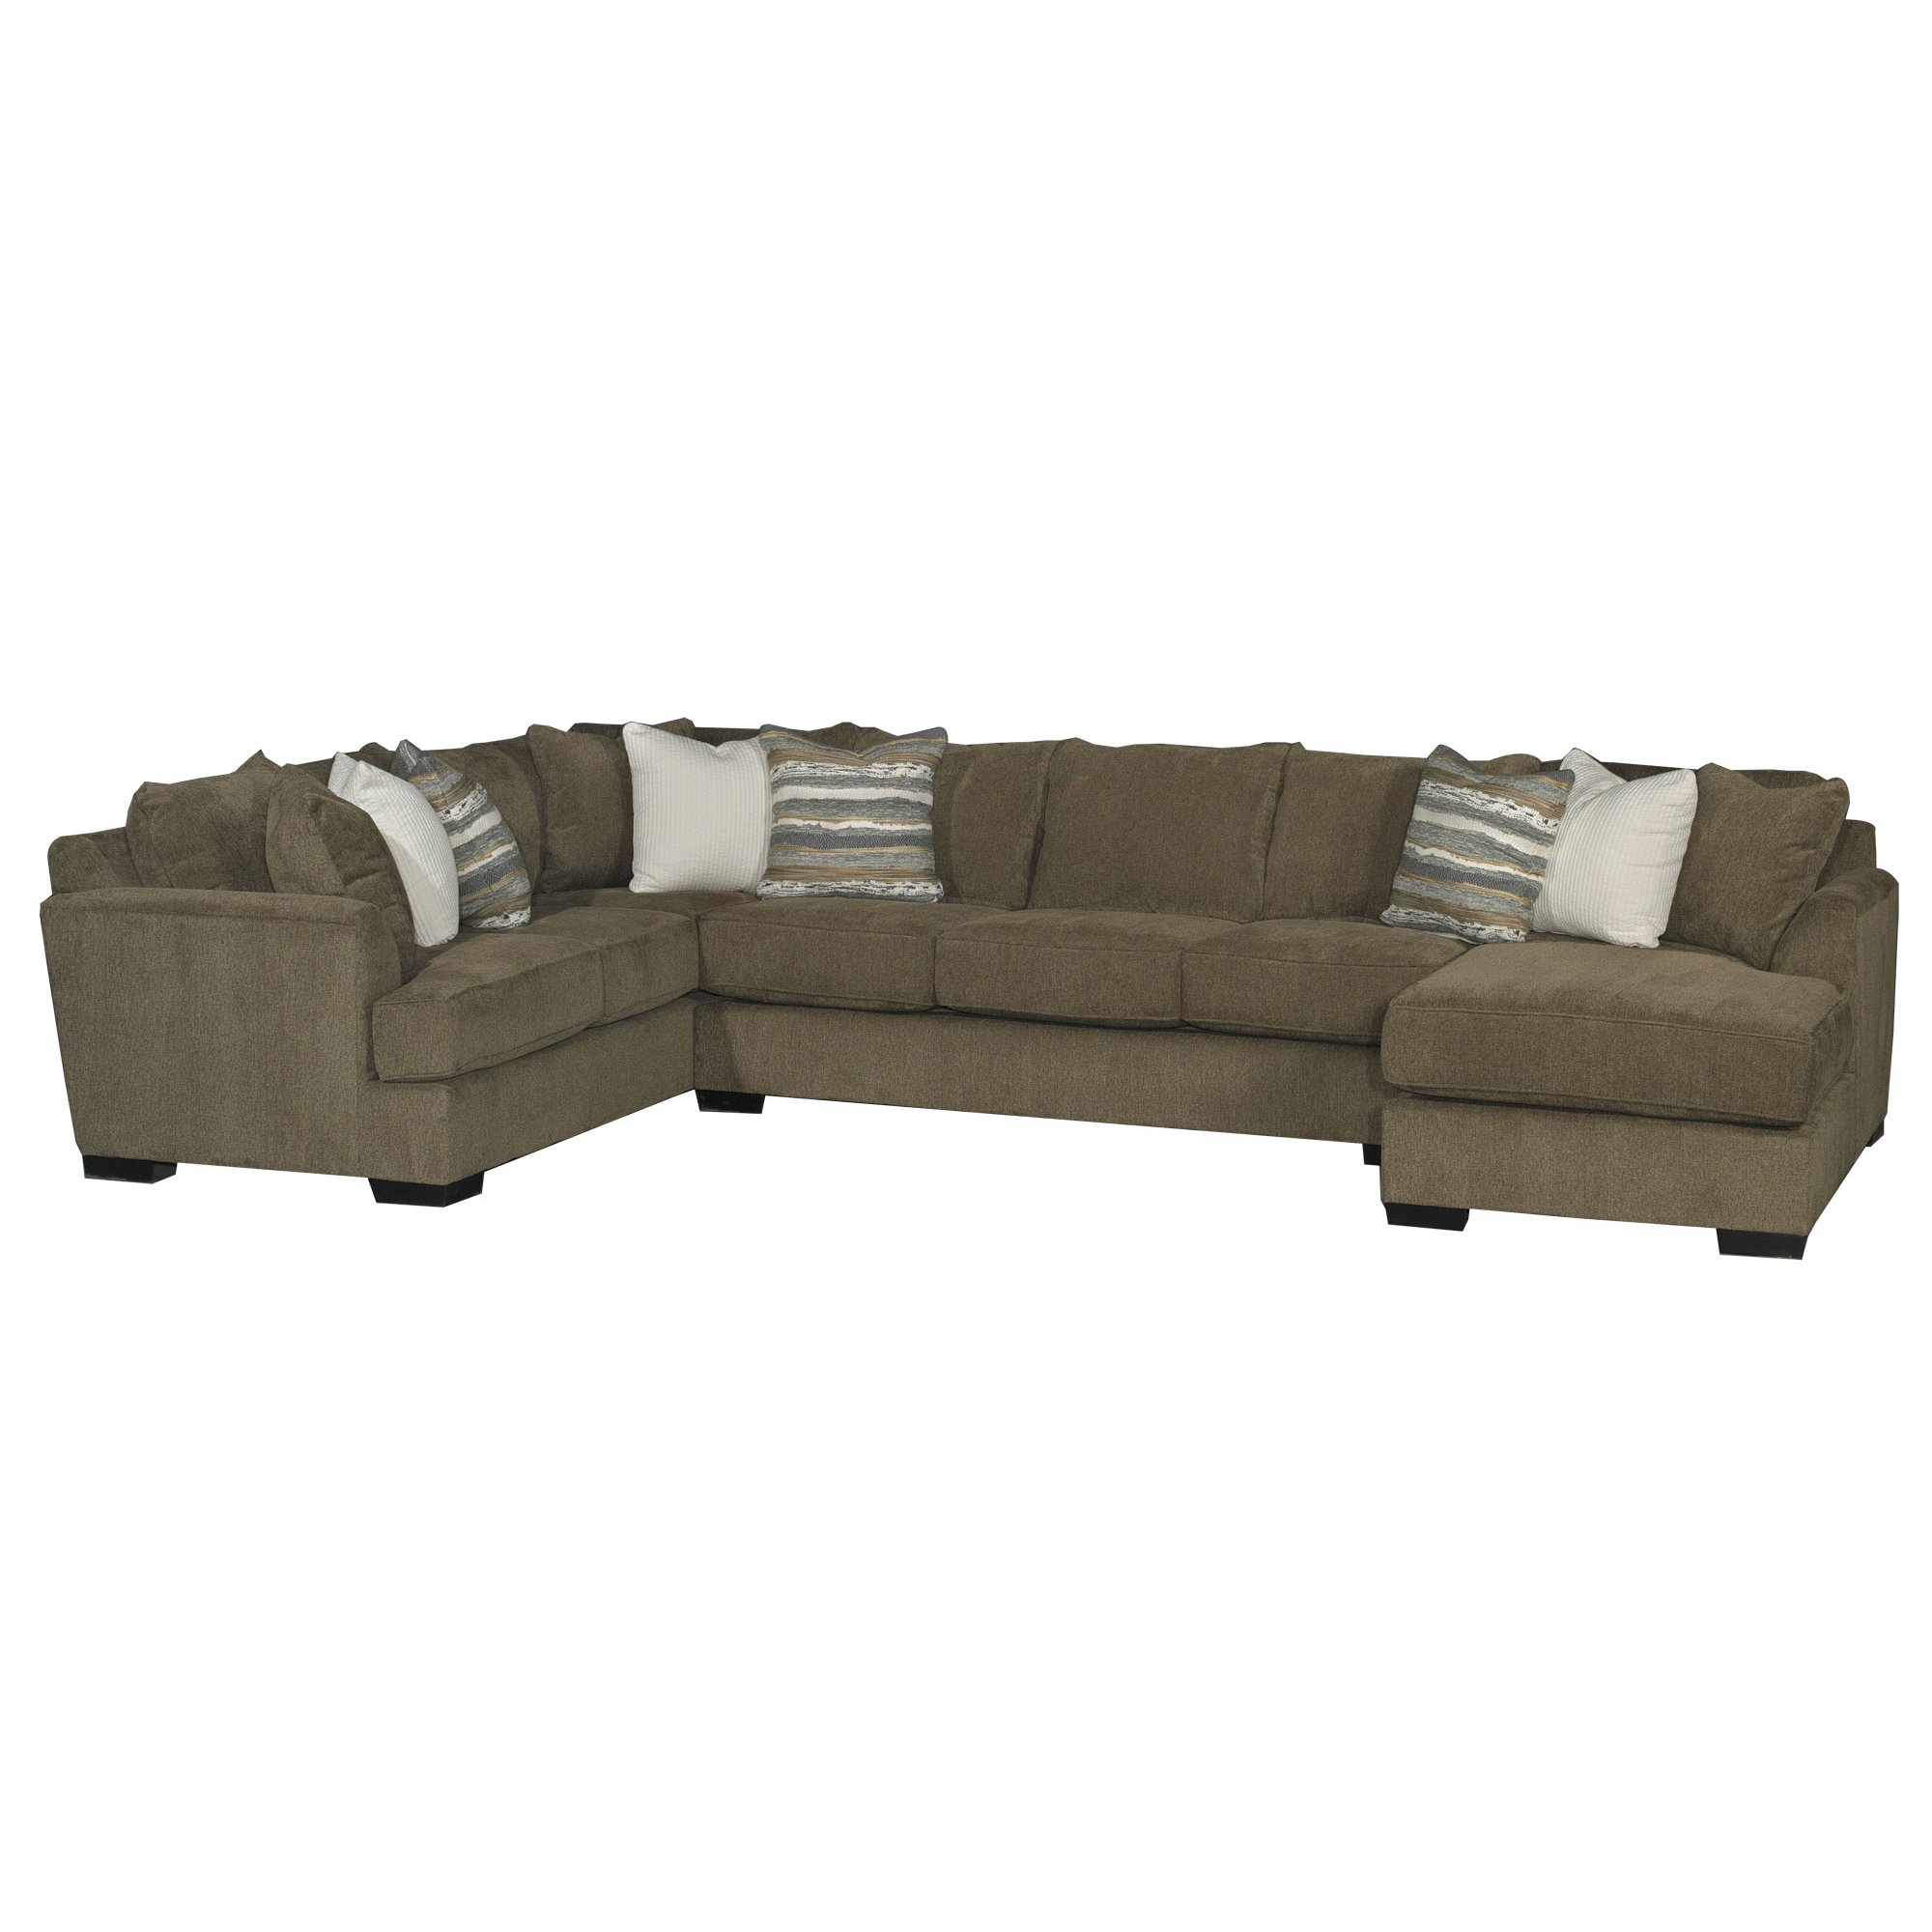 ... Chocolate Brown Casual Contemporary 3-Piece Sectional - Tranquility ...  sc 1 st  RC Willey : 3 piece sectional with chaise - Sectionals, Sofas & Couches